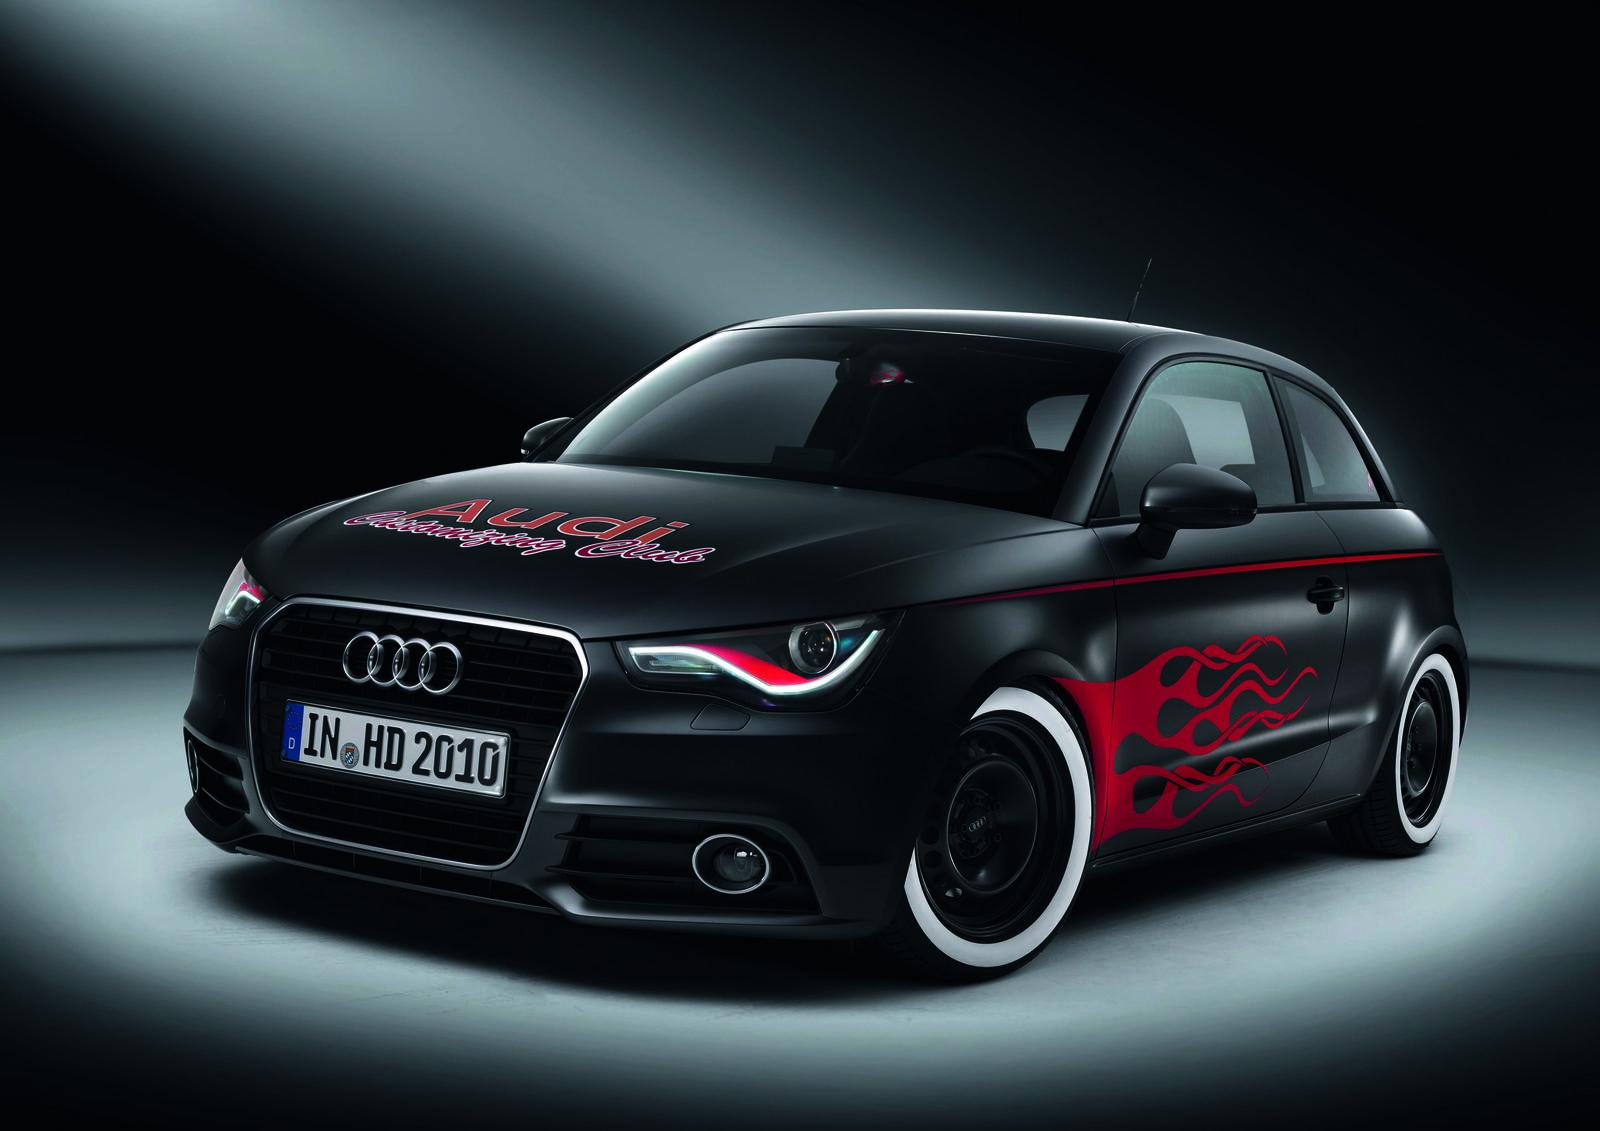 worthersee-audi-a1-21 - Audi Tuning Mag